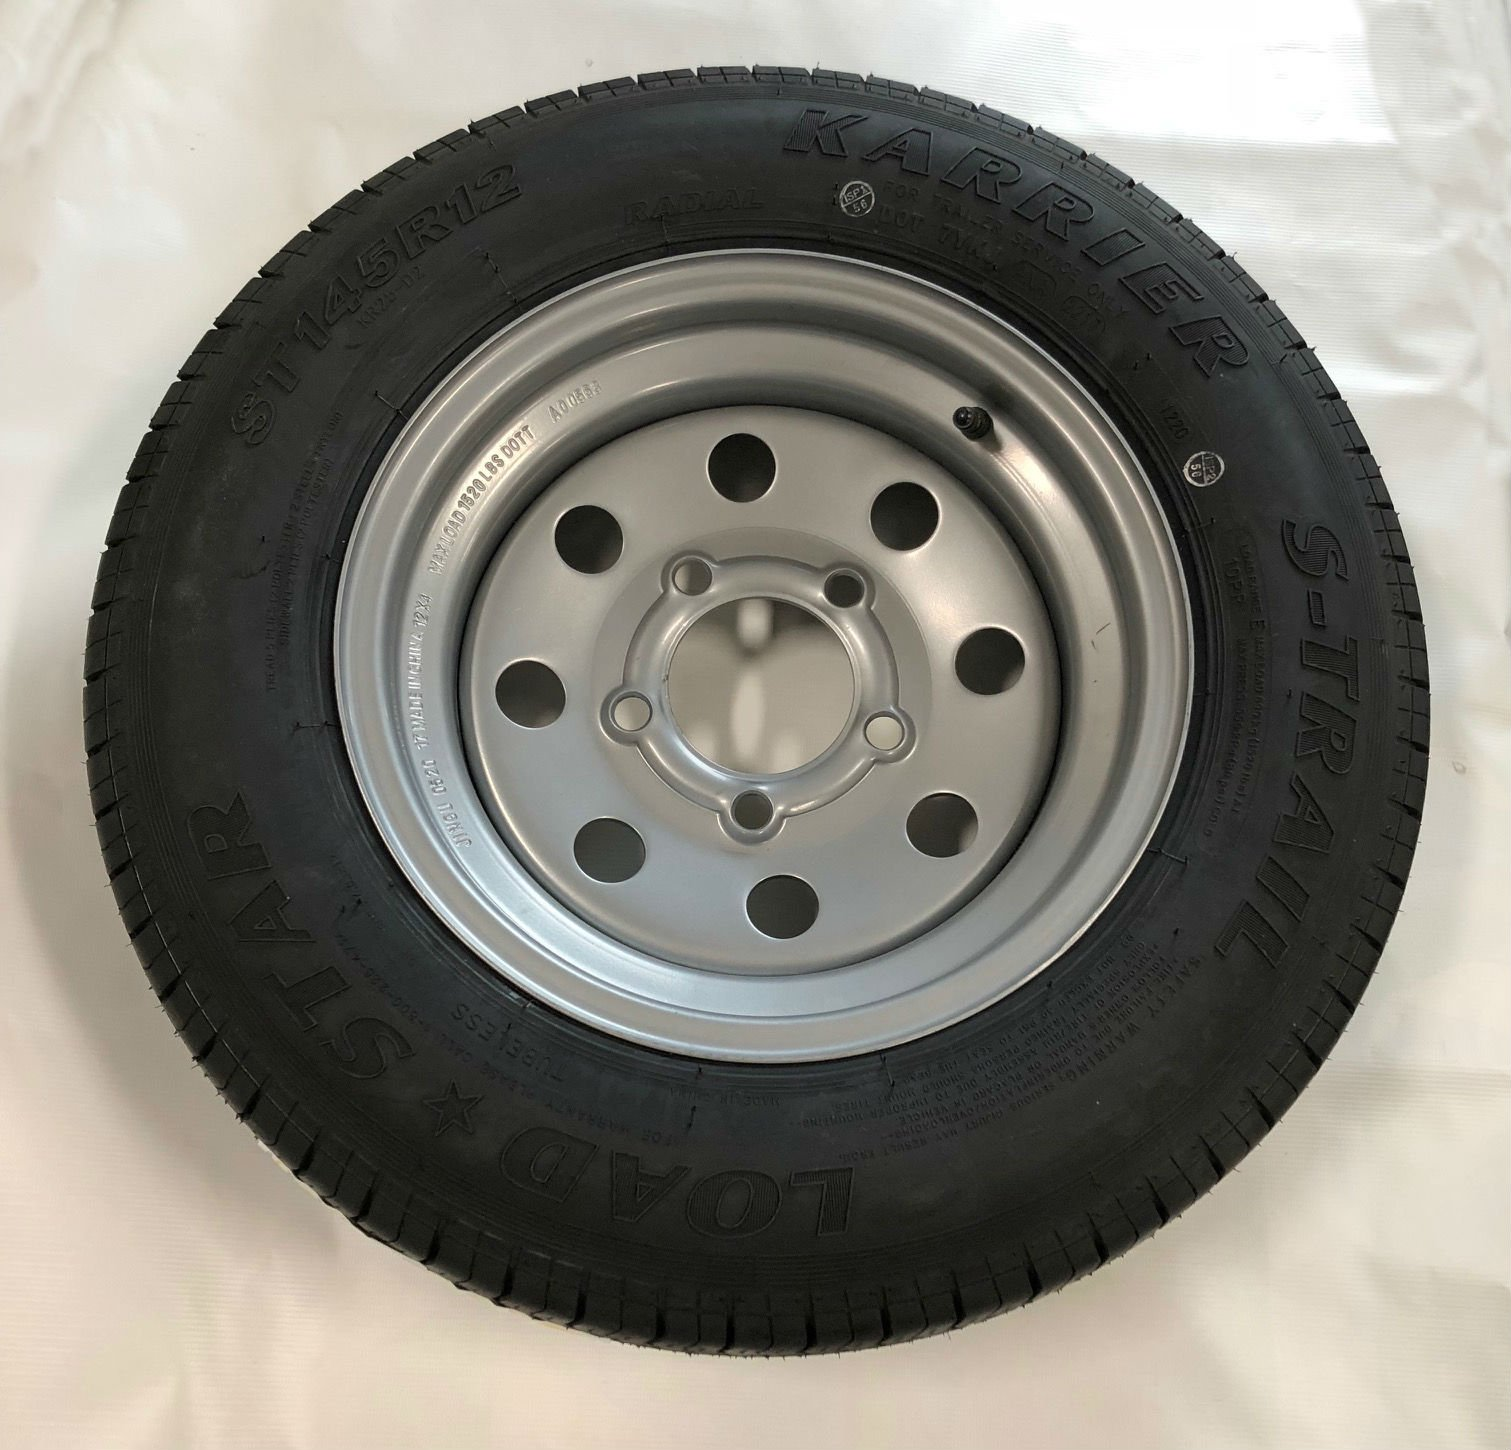 ST145/R12 Triton 08875 Class E Trailer Tire by Triton